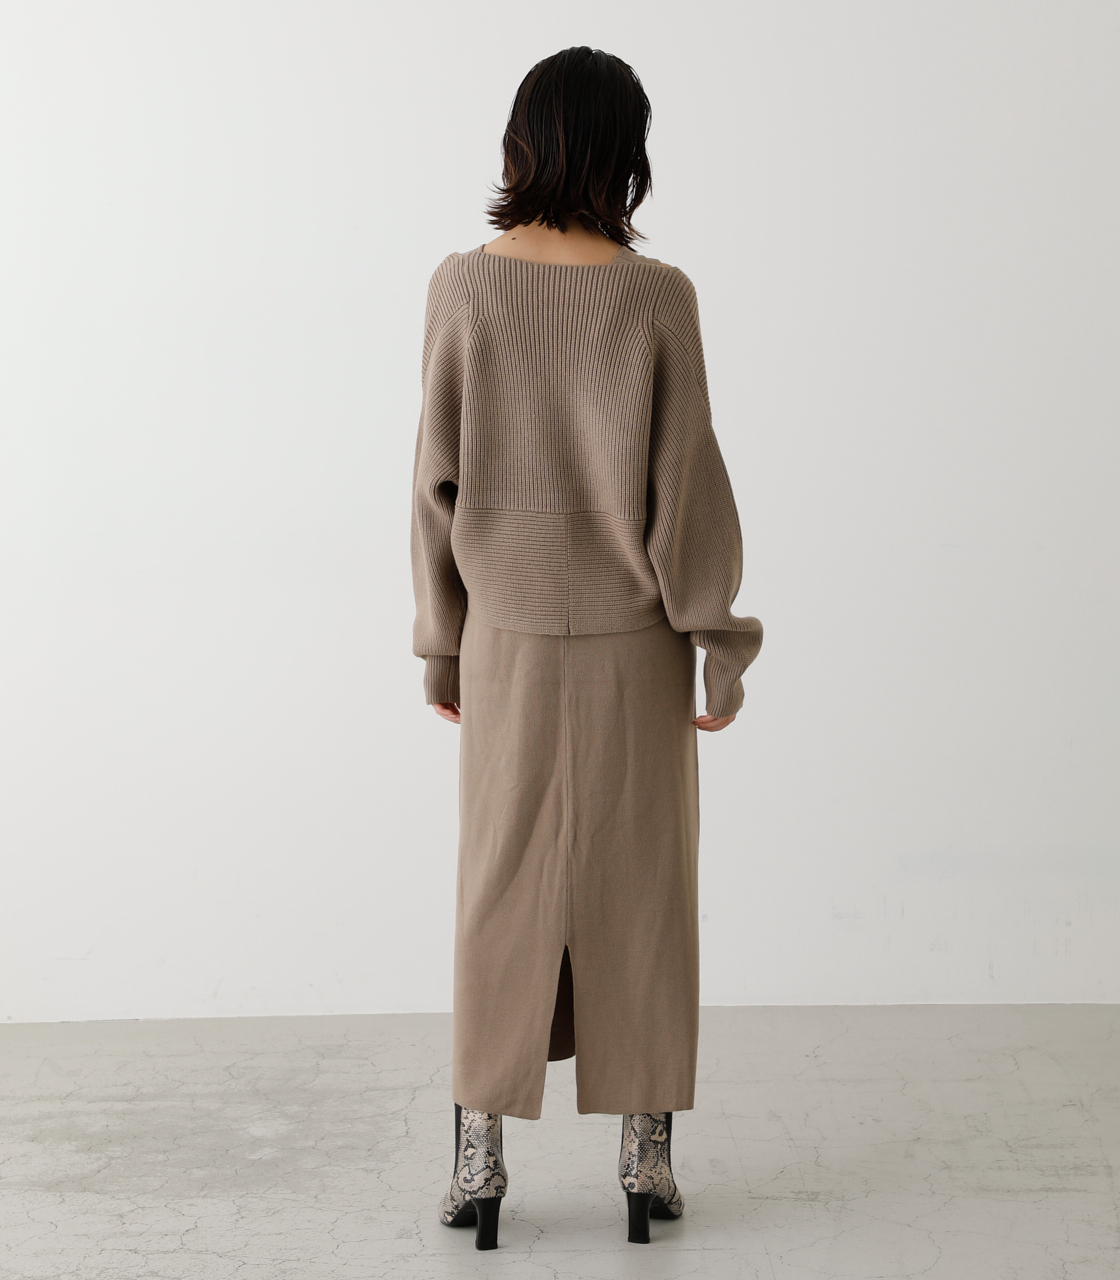 TWIST LAYERED ONE-PIECE/ツイストレイヤードワンピース 詳細画像 BEG 7